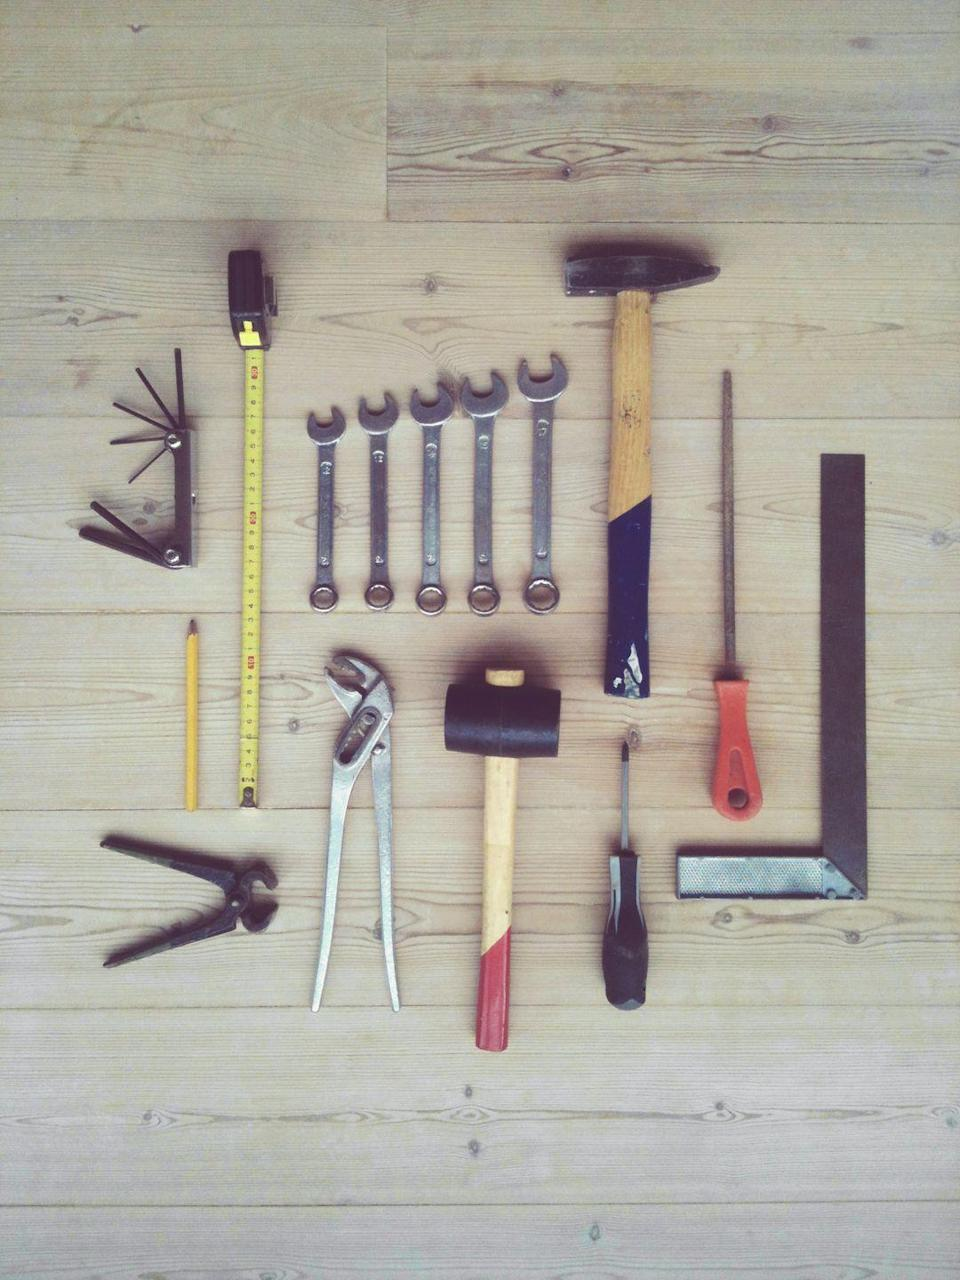 "<p>Not everyone is good at <a href=""https://www.goodhousekeeping.com/home/renovation/advice/g447/diy-home-repair/"" rel=""nofollow noopener"" target=""_blank"" data-ylk=""slk:handy work"" class=""link rapid-noclick-resp"">handy work</a>, but that's no reason to just throw away something that's on the fritz. Online tutorials and apps like <a href=""https://go.redirectingat.com?id=74968X1596630&url=https%3A%2F%2Fitunes.apple.com%2Fus%2Fapp%2Ftaskrabbit-handyman-more%2Fid374165361%3Fmt%3D8&sref=https%3A%2F%2Fwww.redbookmag.com%2Flife%2Fg36077856%2Fearth-day-tips%2F"" rel=""nofollow noopener"" target=""_blank"" data-ylk=""slk:TaskRabbit"" class=""link rapid-noclick-resp"">TaskRabbit</a> have made it possible to salvage your malfunctioning products without having to shell out the dough for a replacement. The less waste heading to the dump the better. </p>"